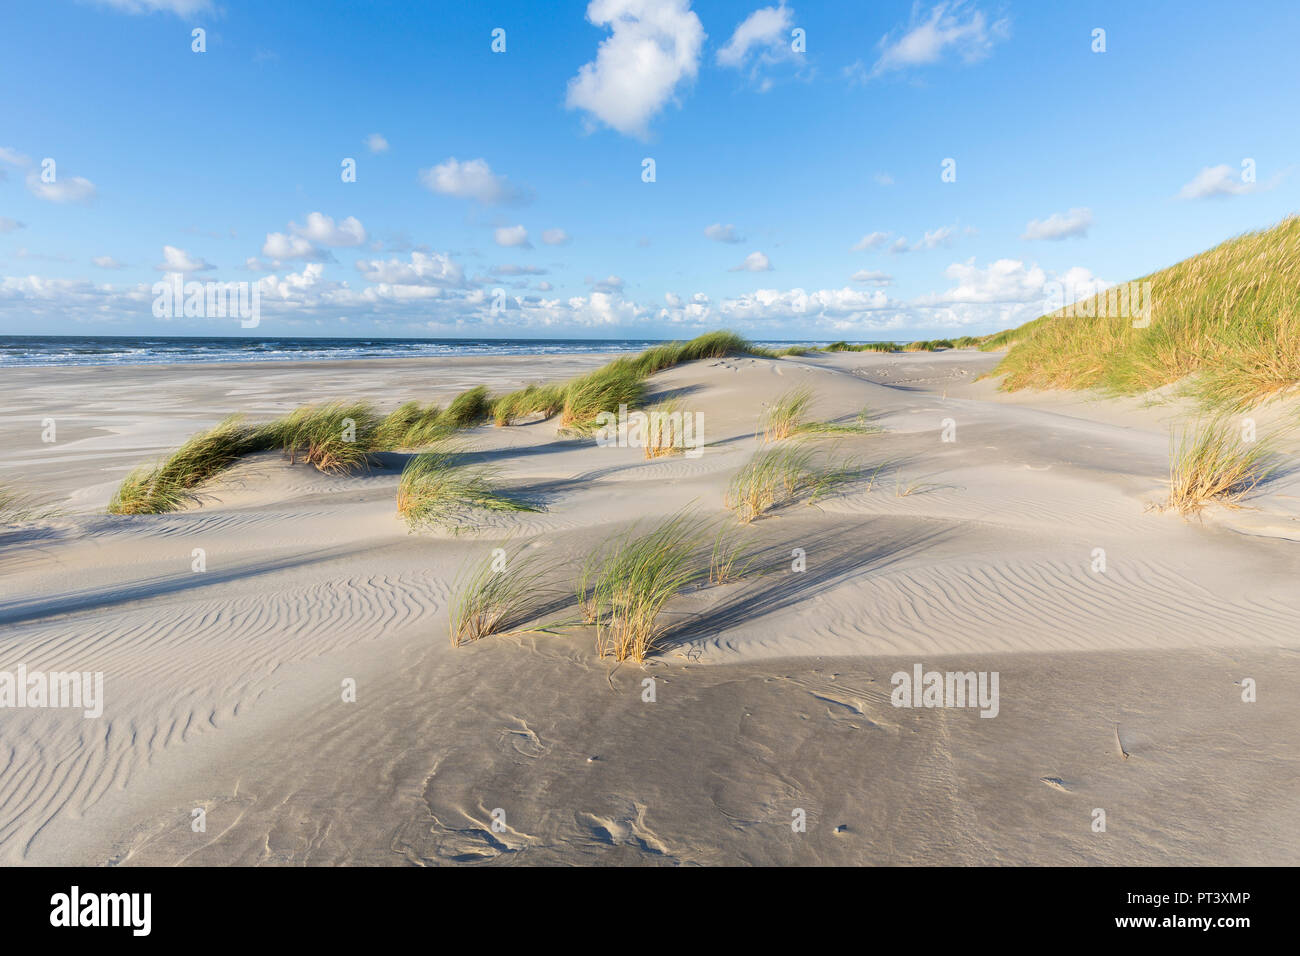 Sand an marram waving in afternoon sun. Dunes and beach of Terschelling, Netherlands - Stock Image